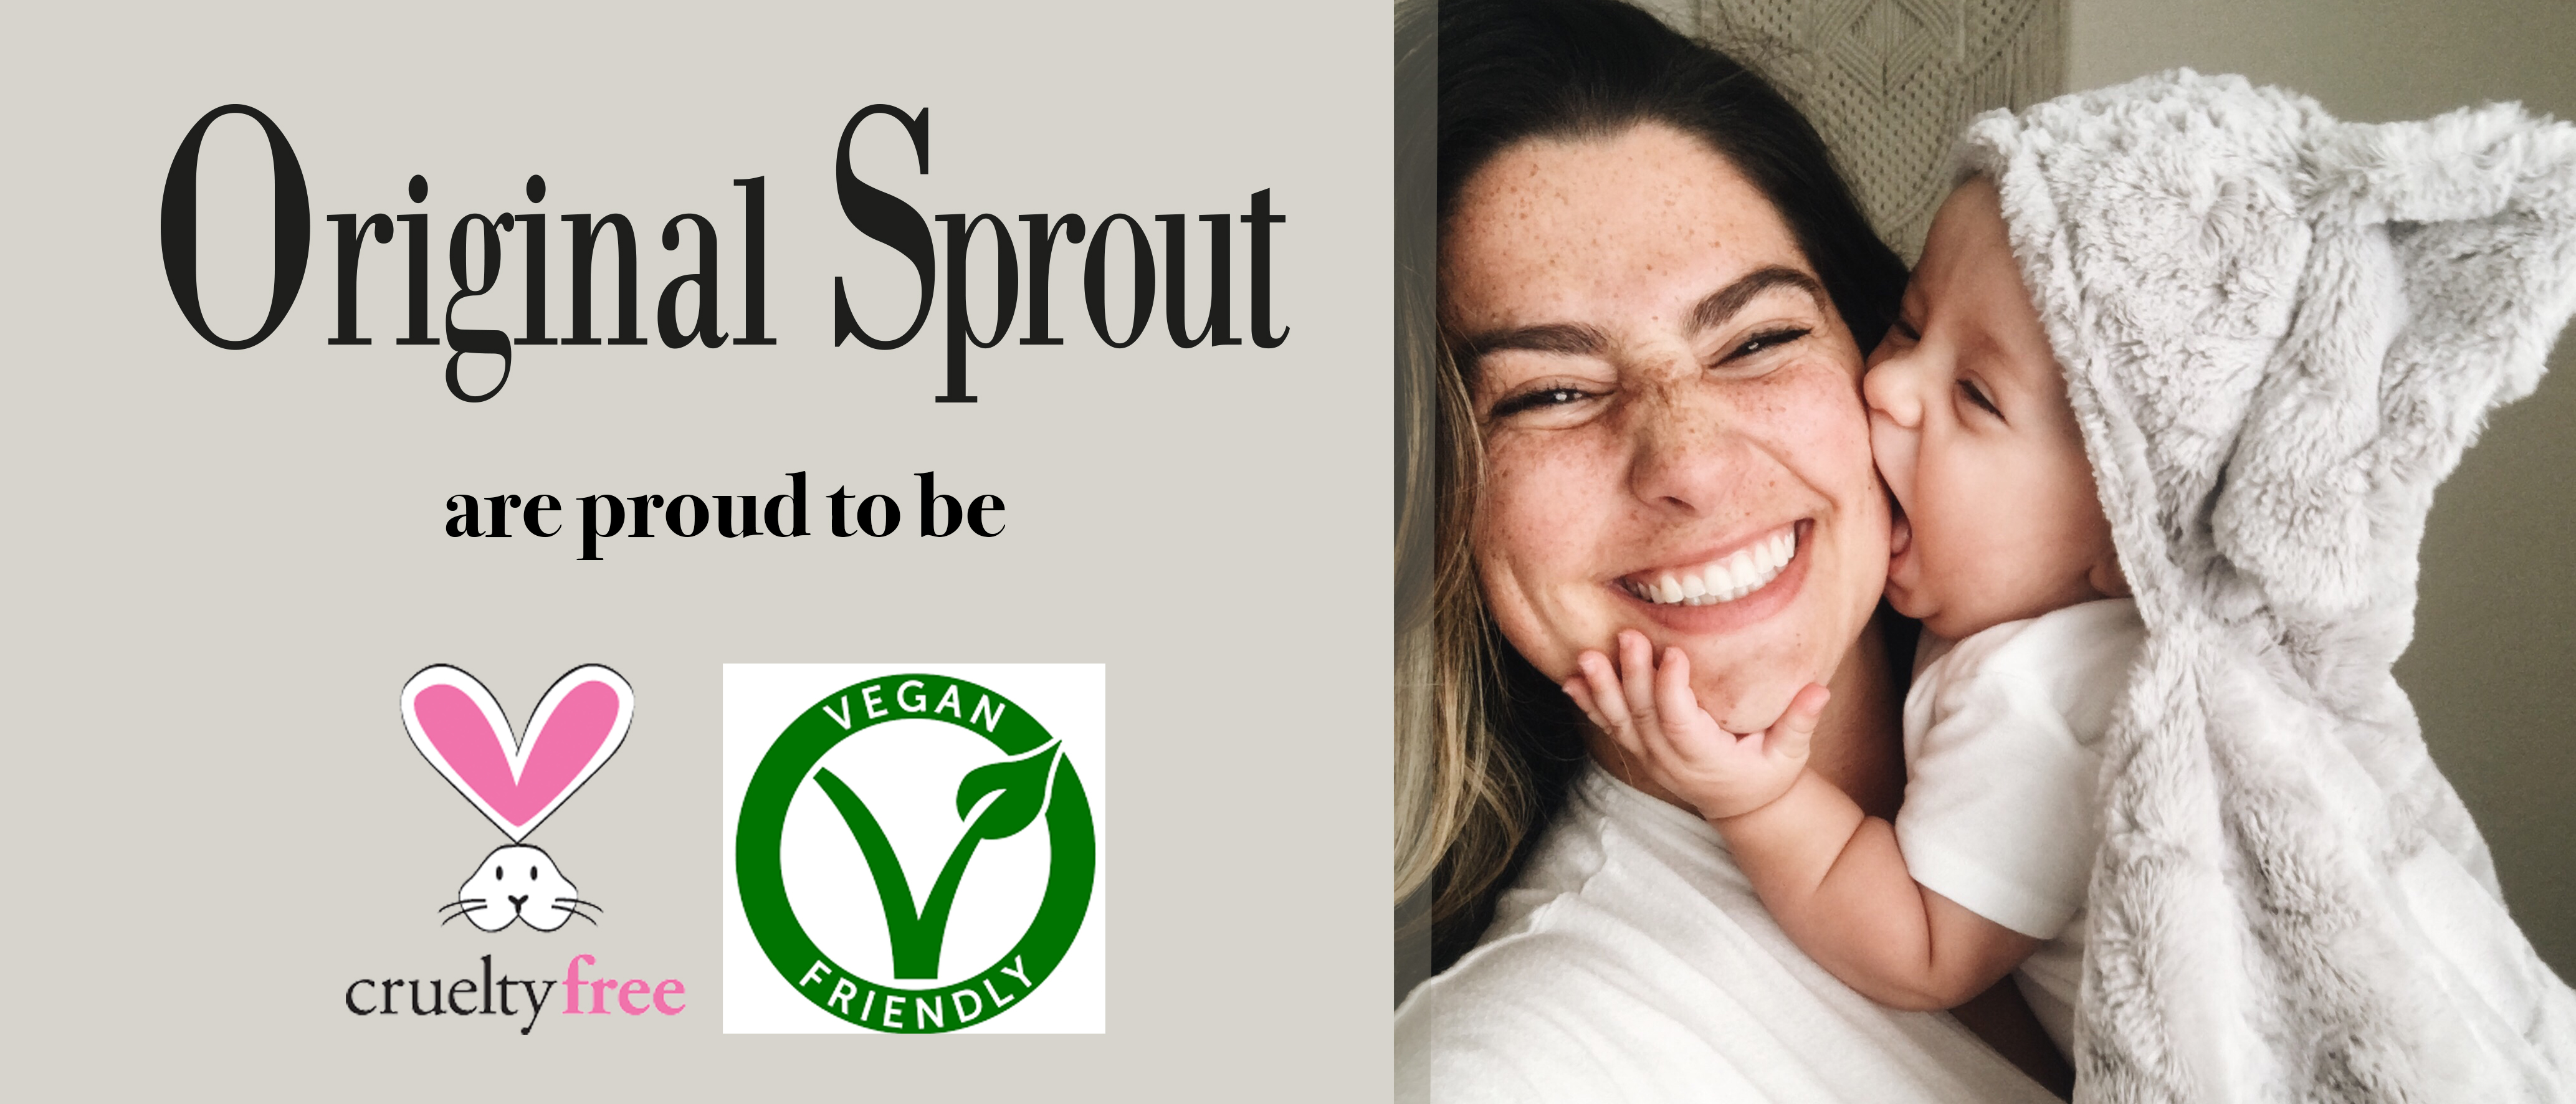 we-are-proud-to-be-vegan-and-cruelty-free-